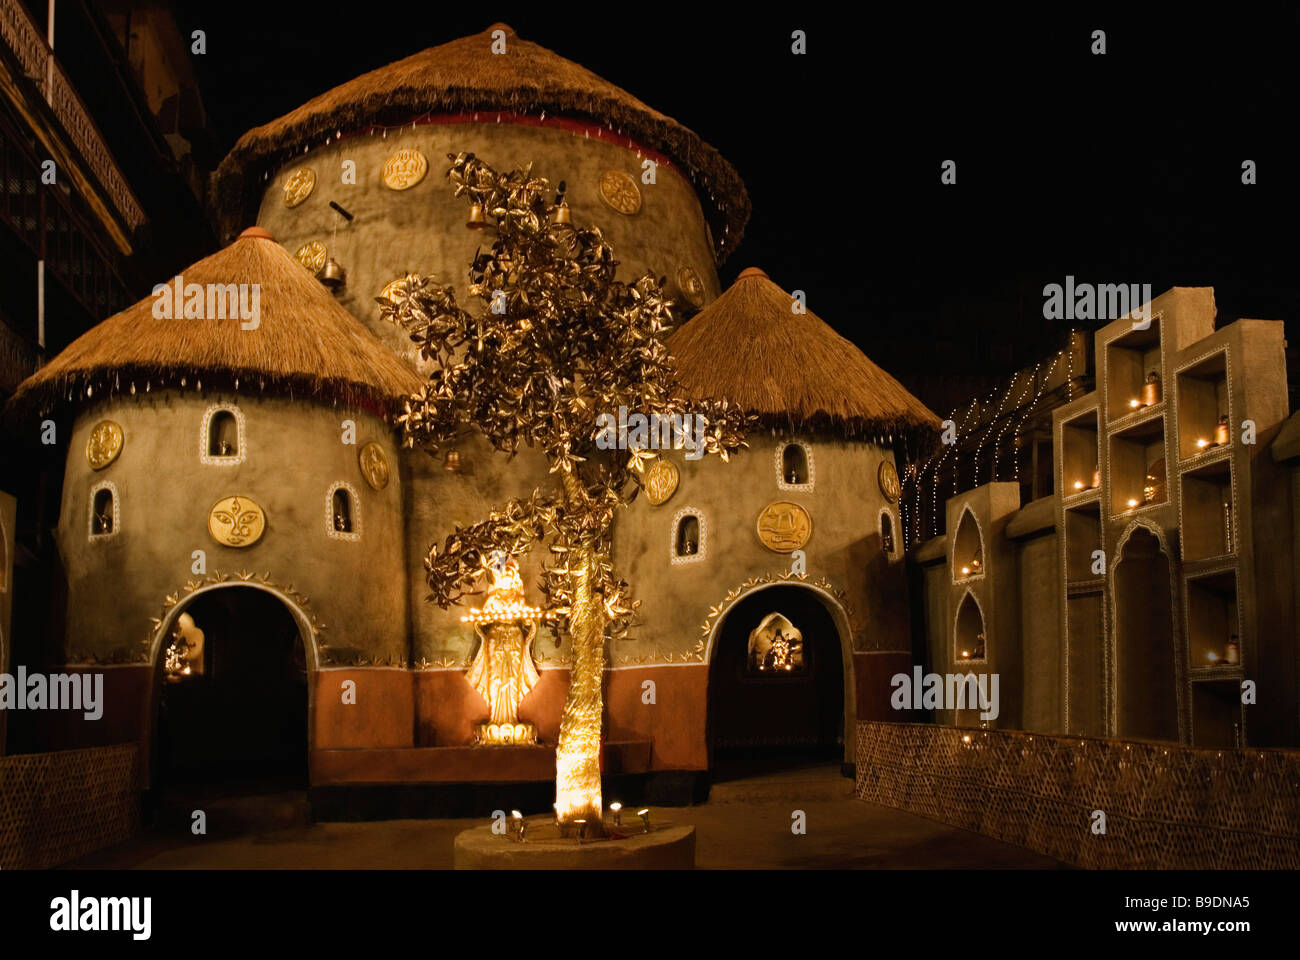 Durga puja pandal at night kolkata west bengal india stock durga puja pandal at night kolkata west bengal india thecheapjerseys Images